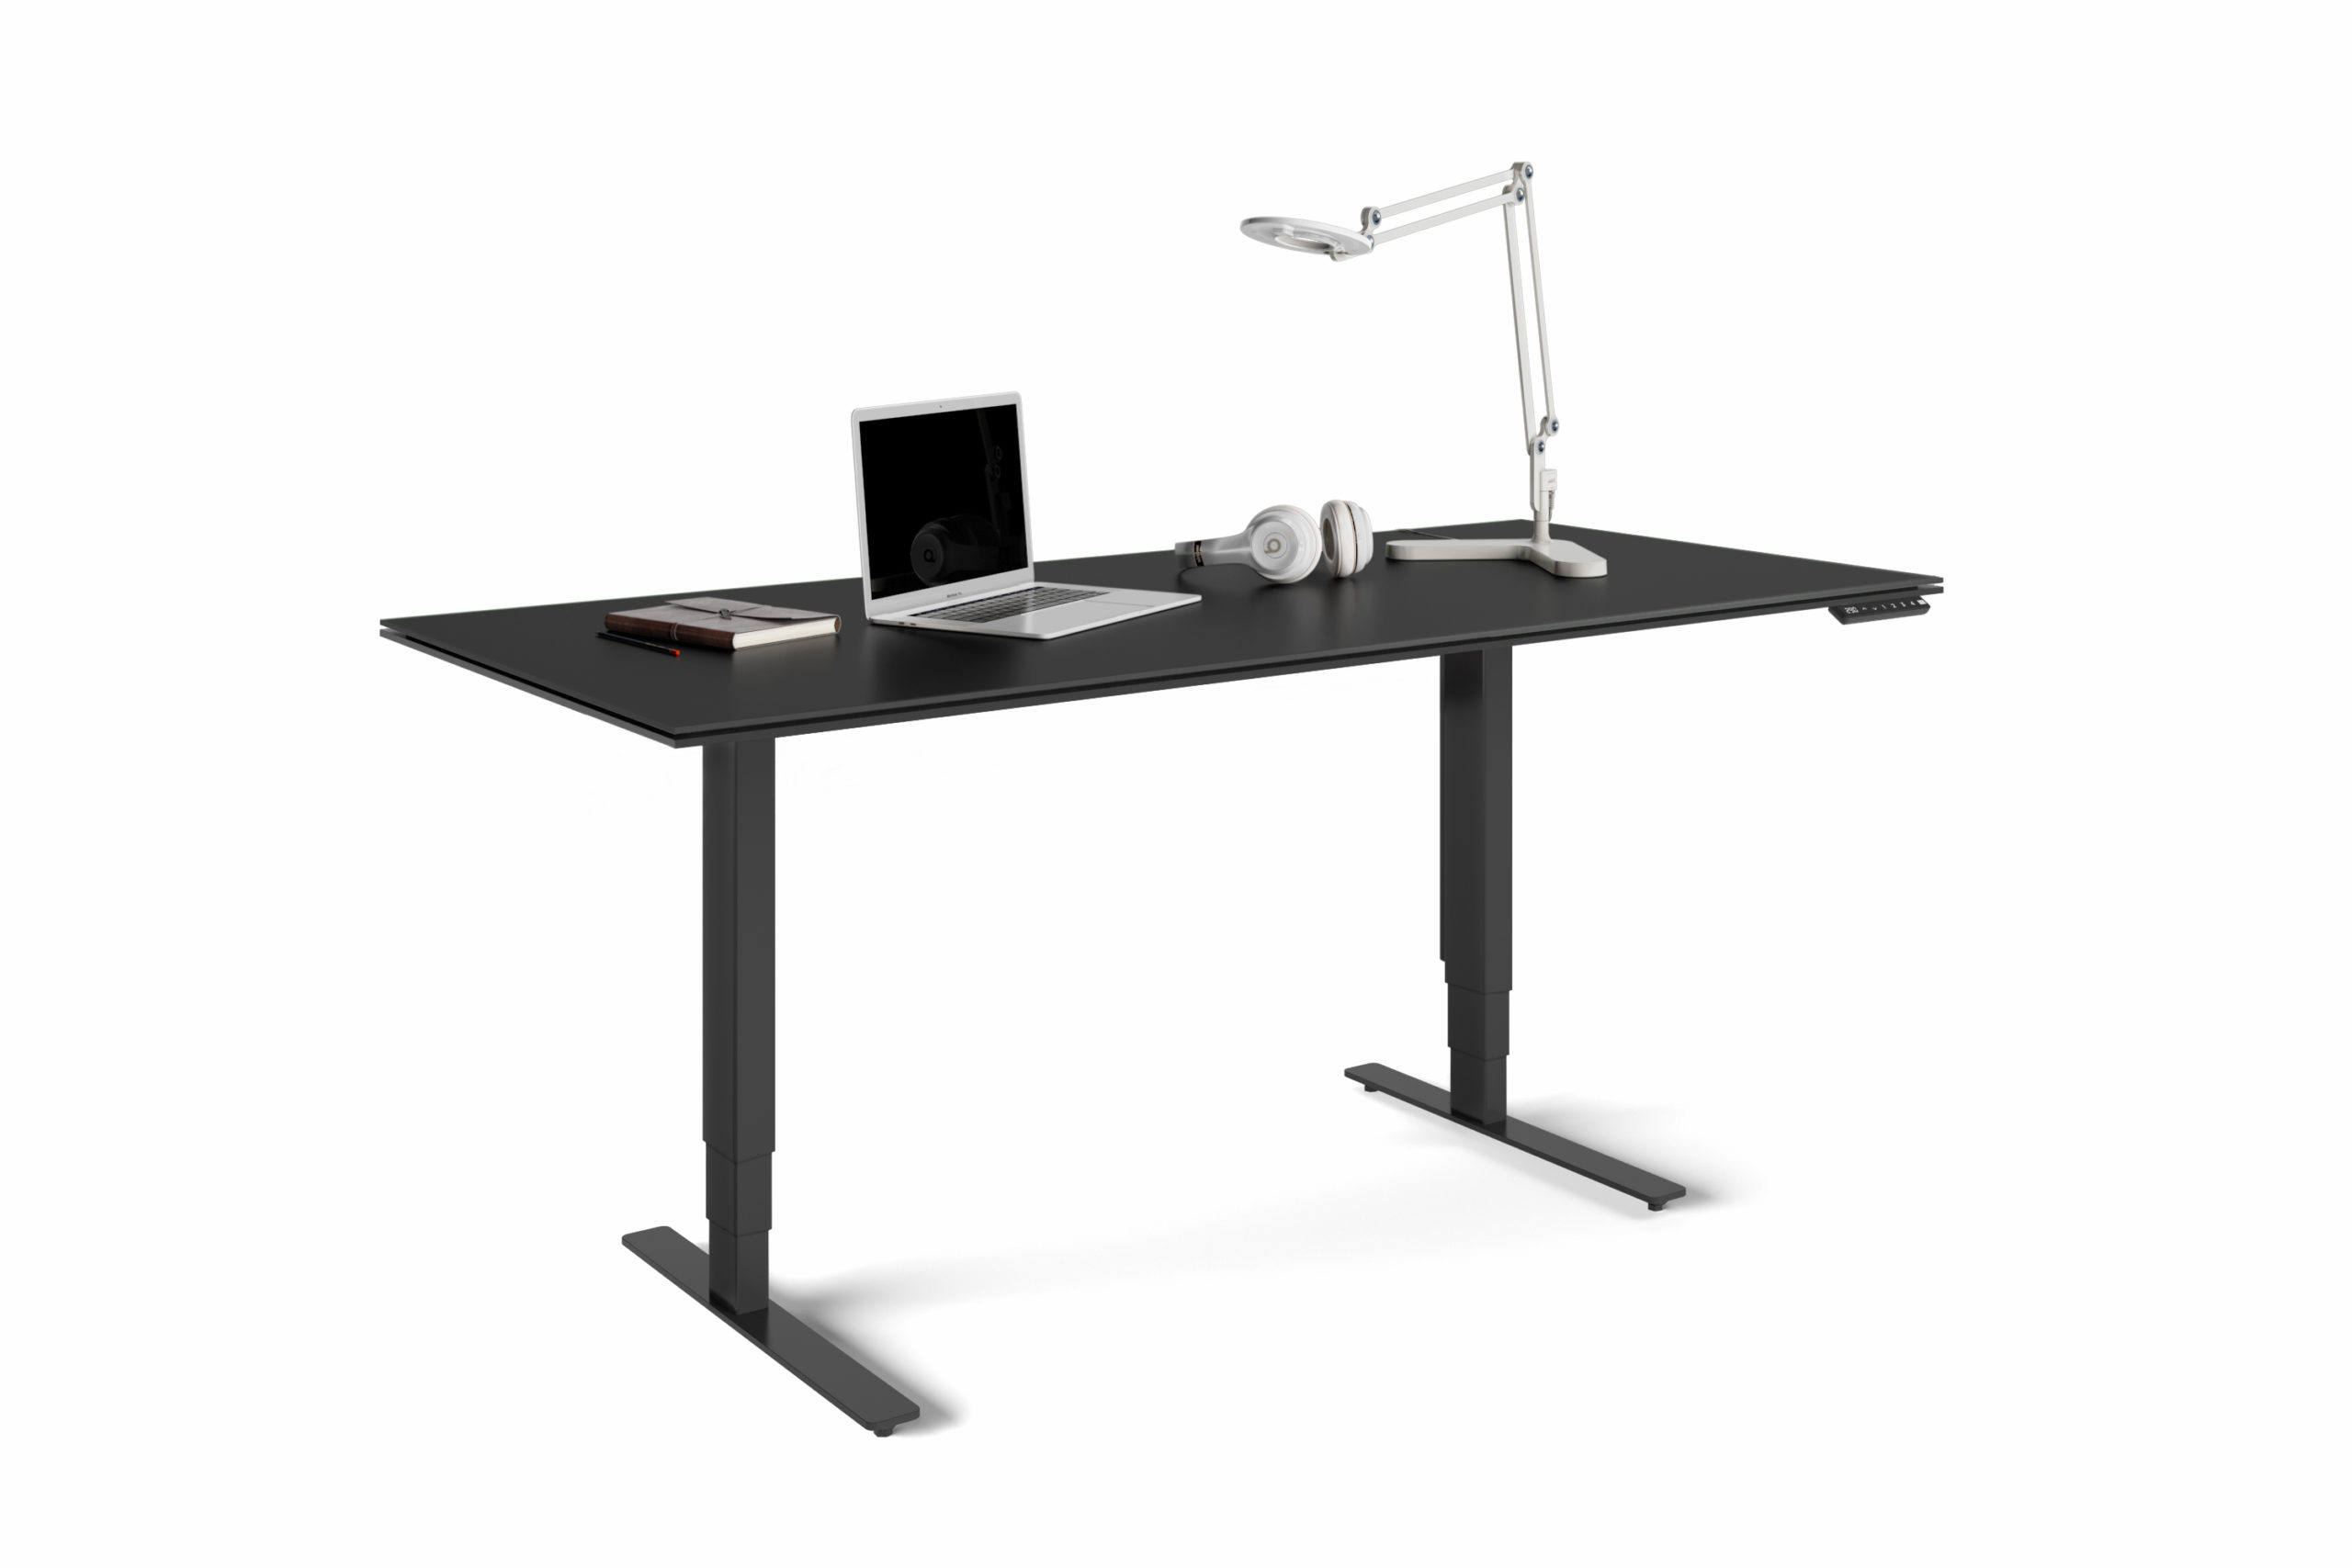 Stance 6652 Large Height Adjustable Standing Desk | BDI Furniture